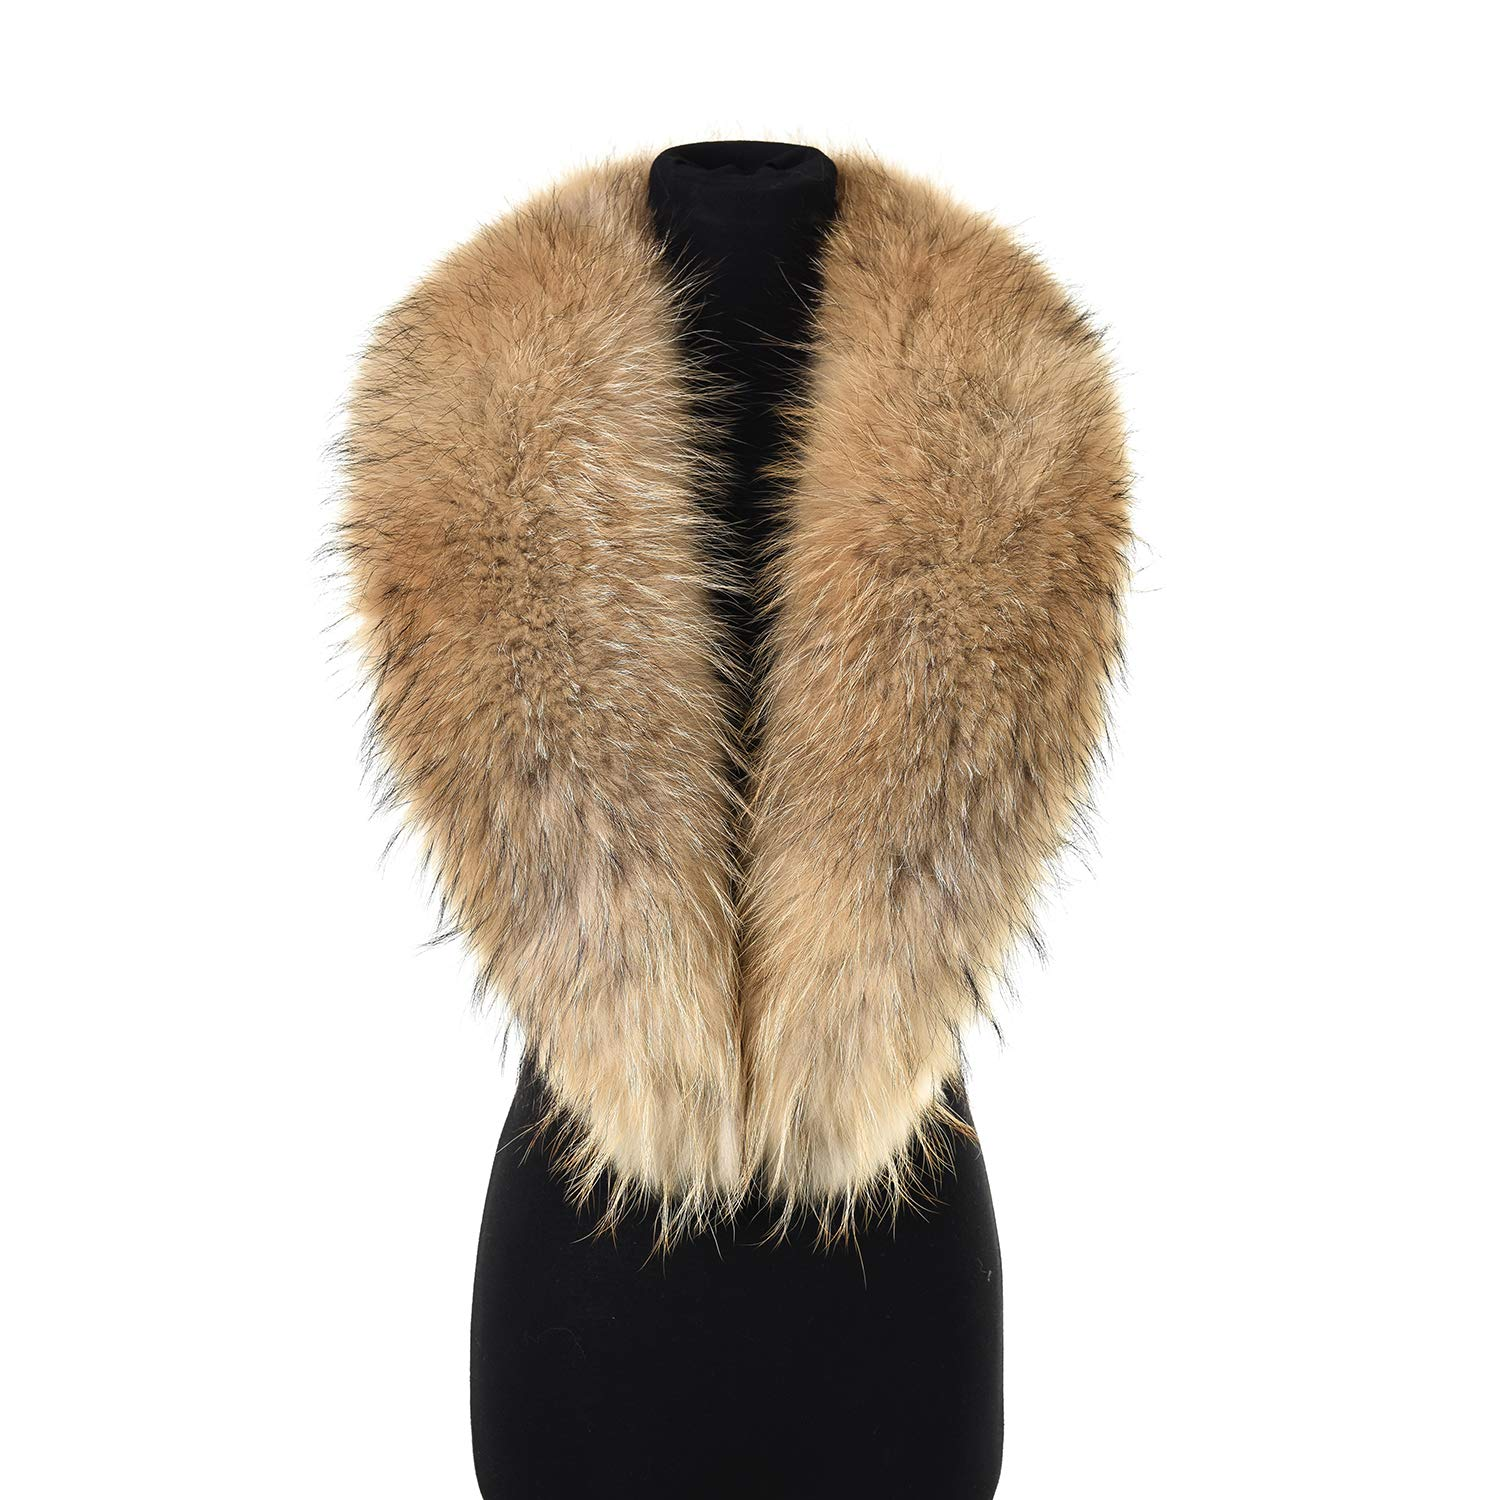 Ferand Women's Luxurious Real Raccoon Fur Collar Scarf, Detachable and Warm, Ideal for Your Coat Jacket in Winter, 110 cm: Light natural brown